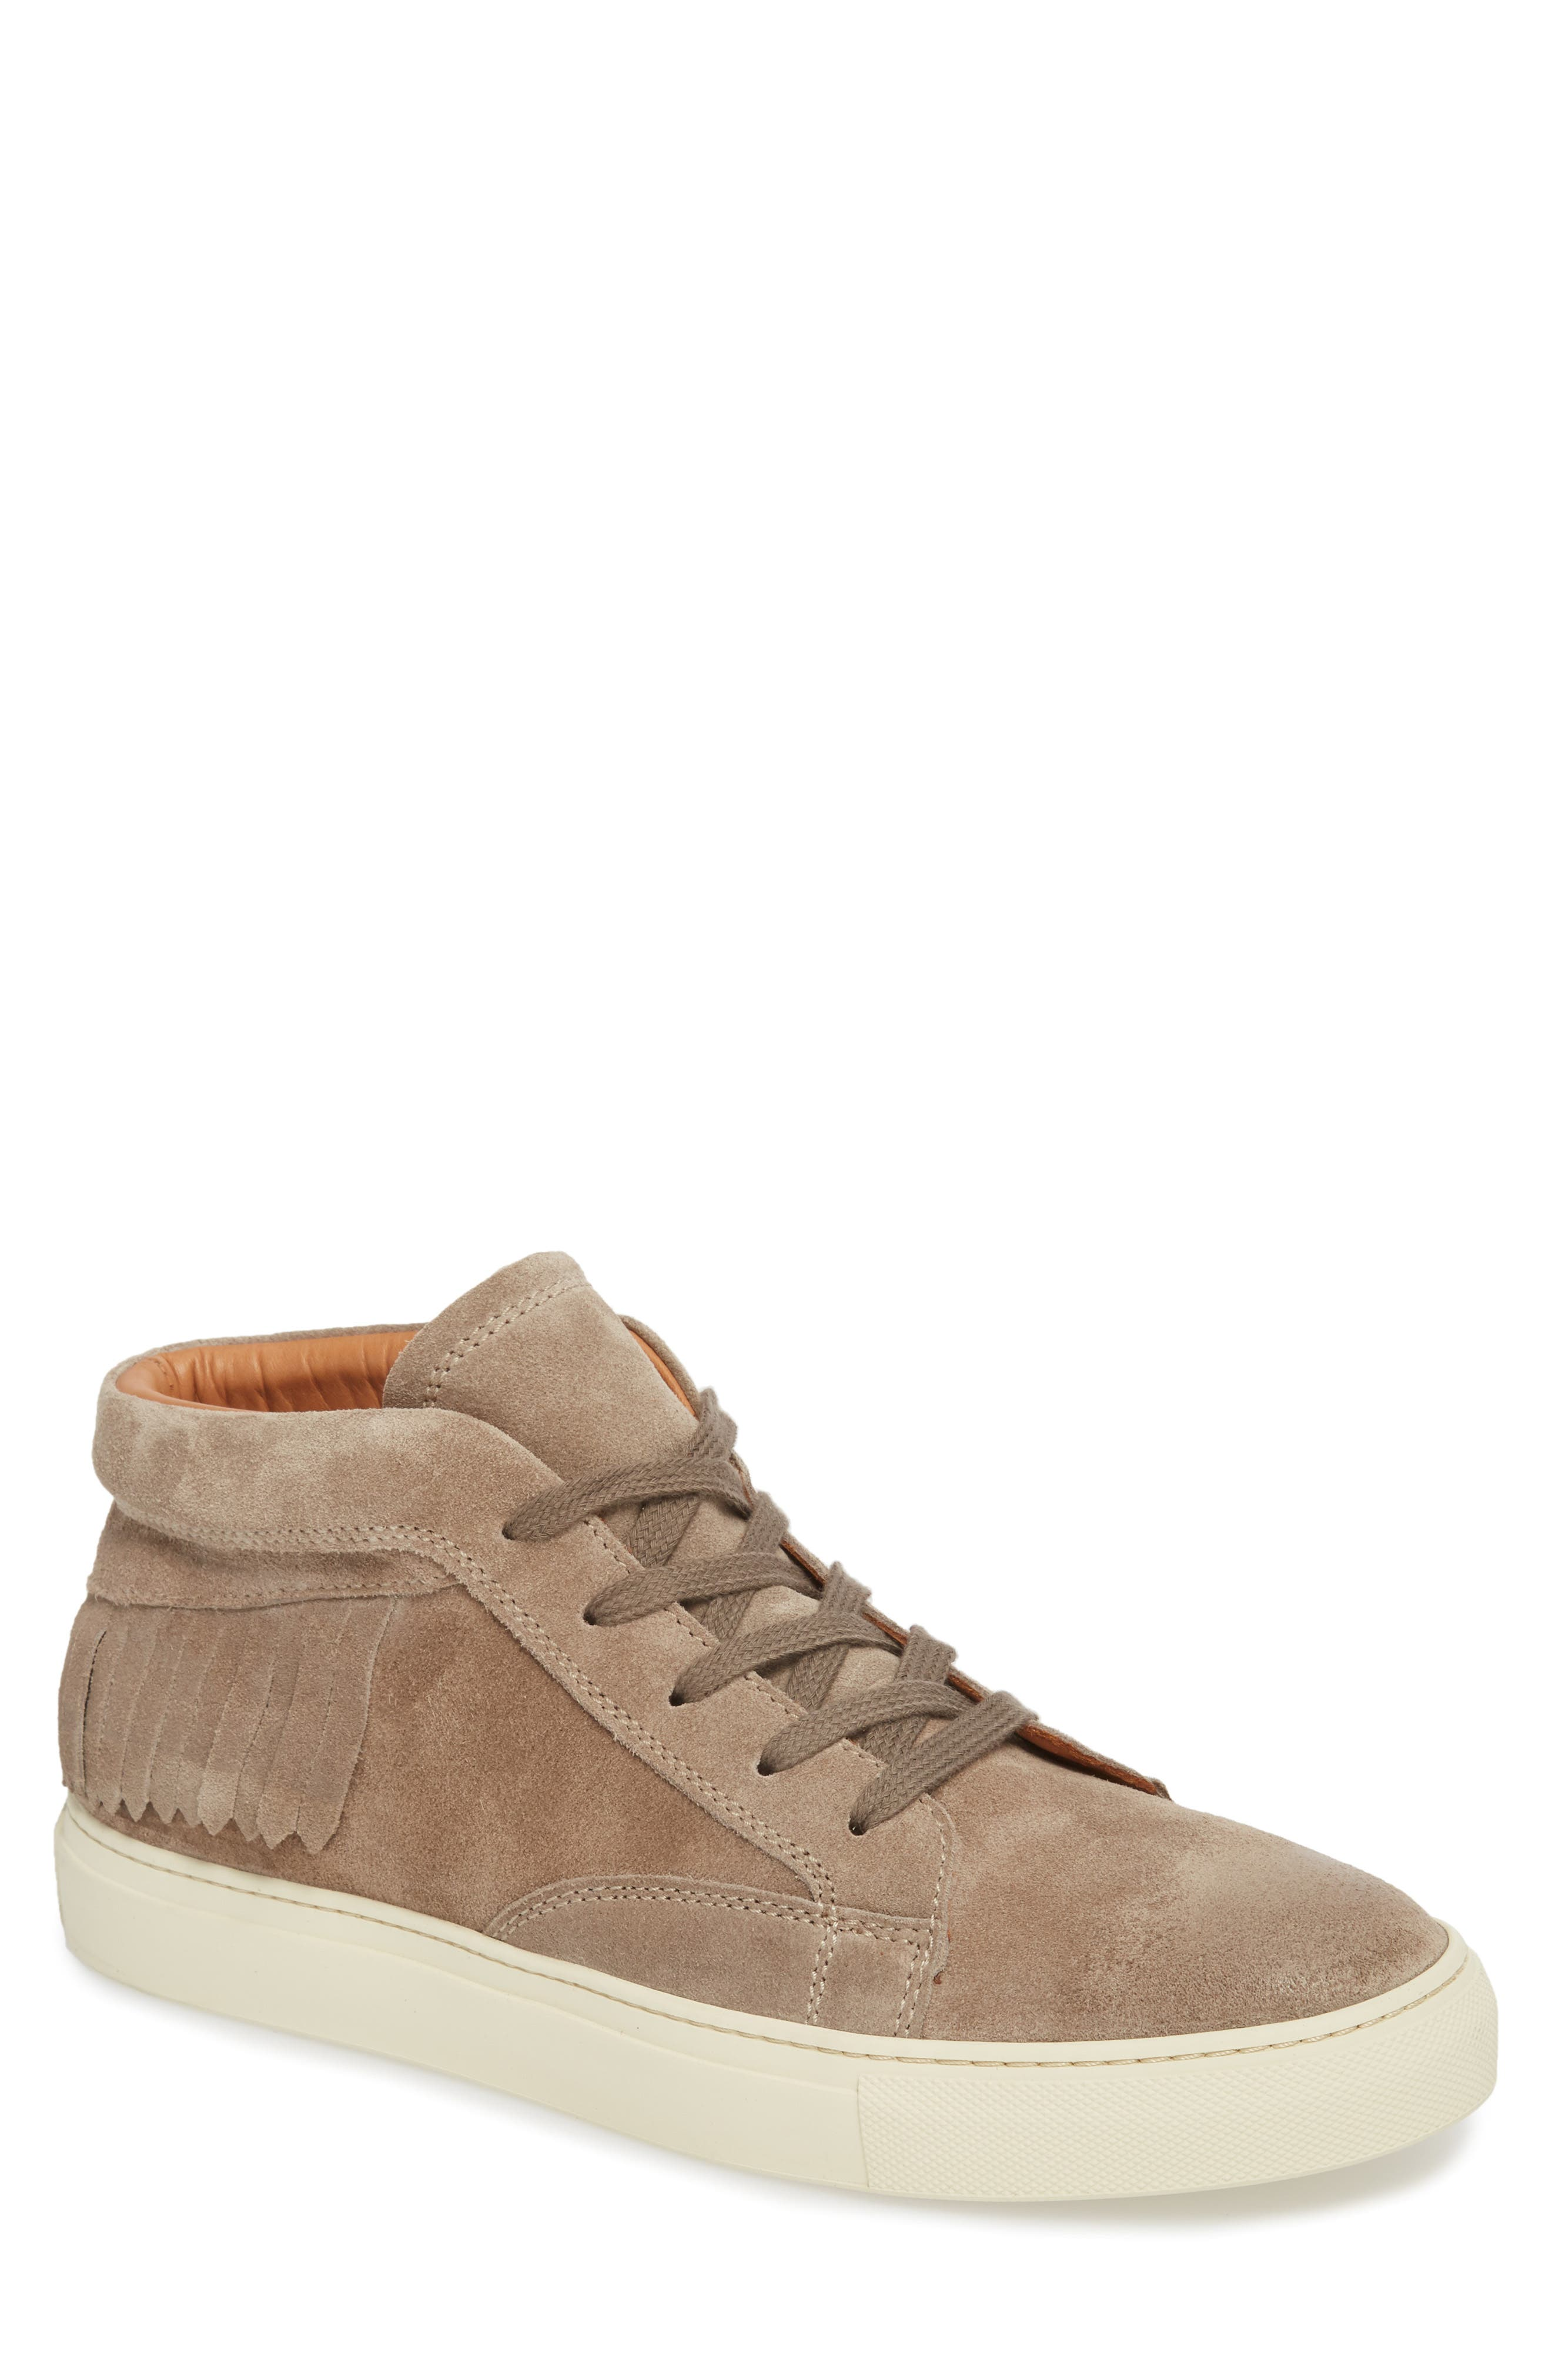 Reed Fringe Sneaker,                         Main,                         color, 259